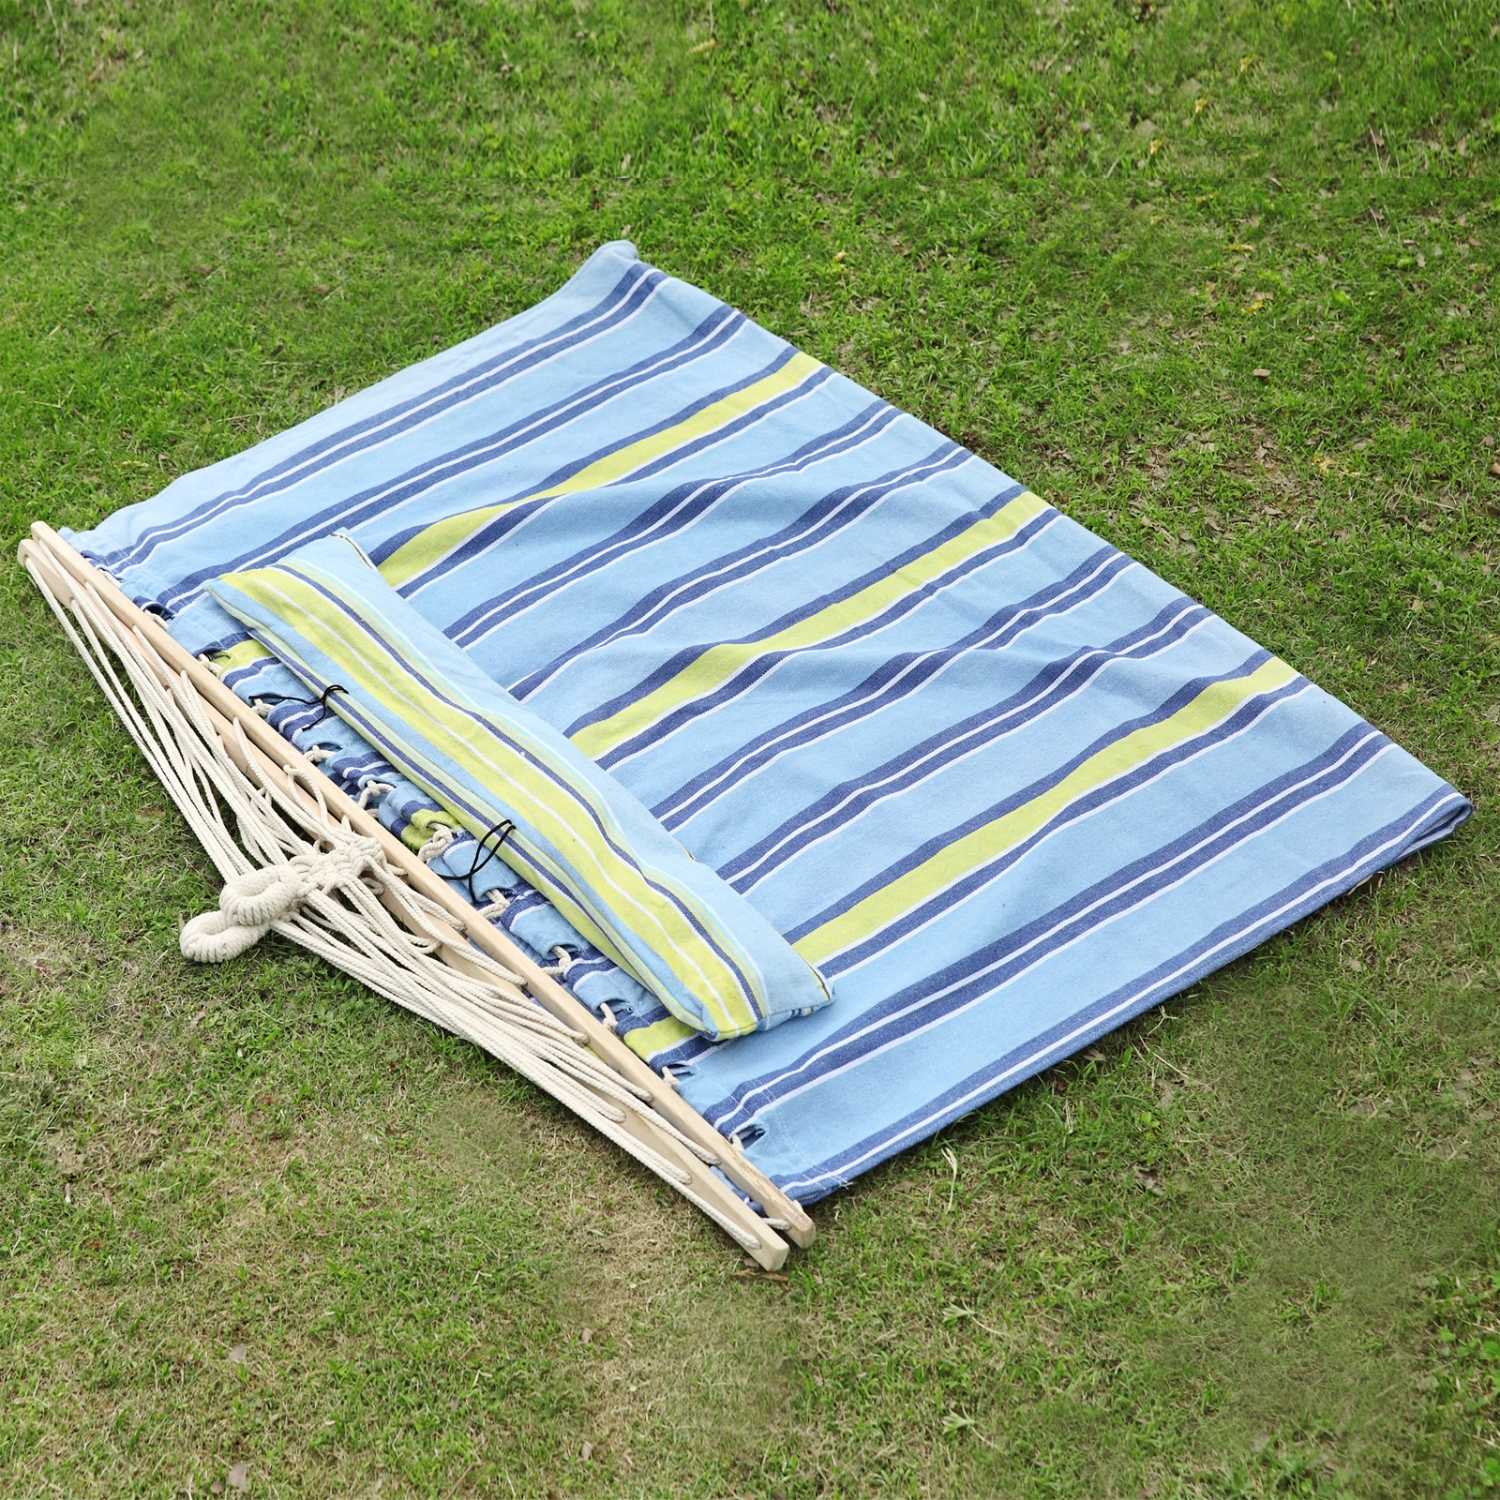 83 X55 Double Size Hammock Quilted Fabric Pillow Spreader